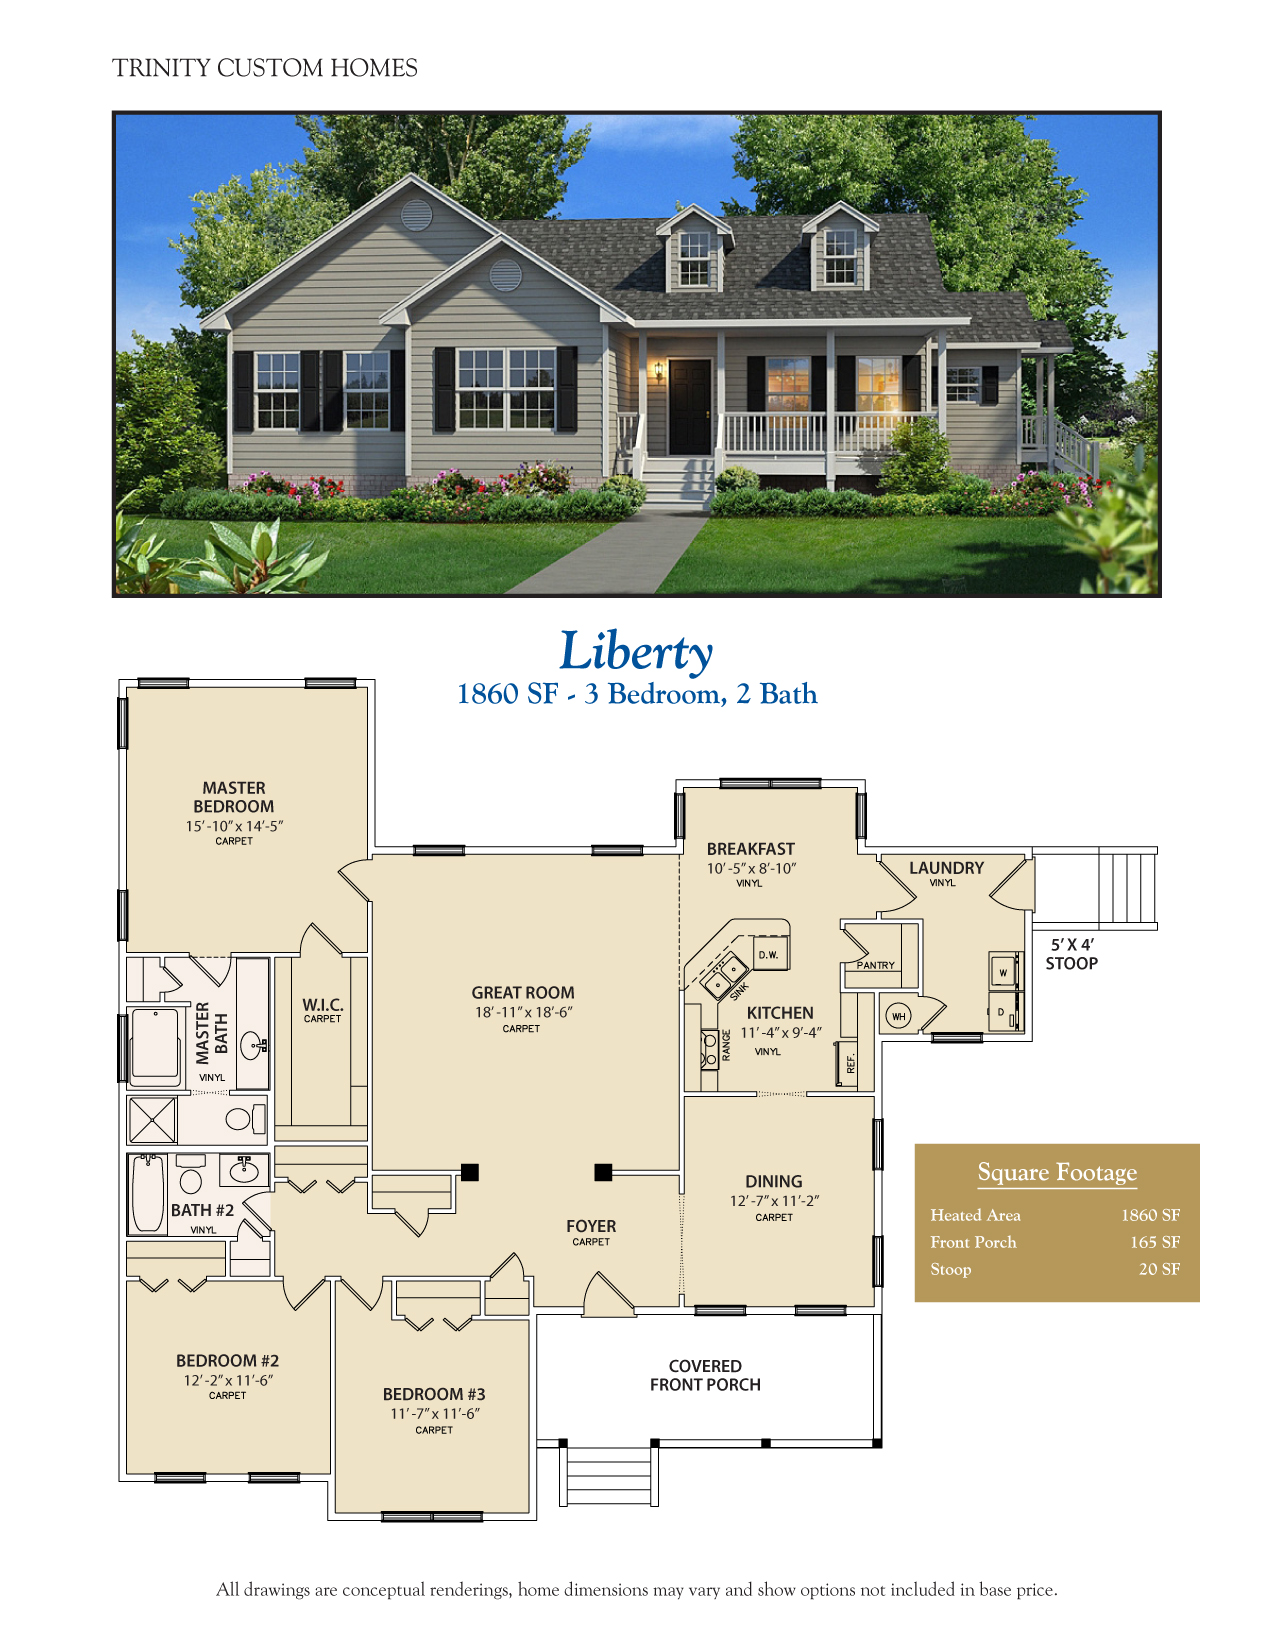 luxury home floorplans floor plans trinity custom homes georgia 9822